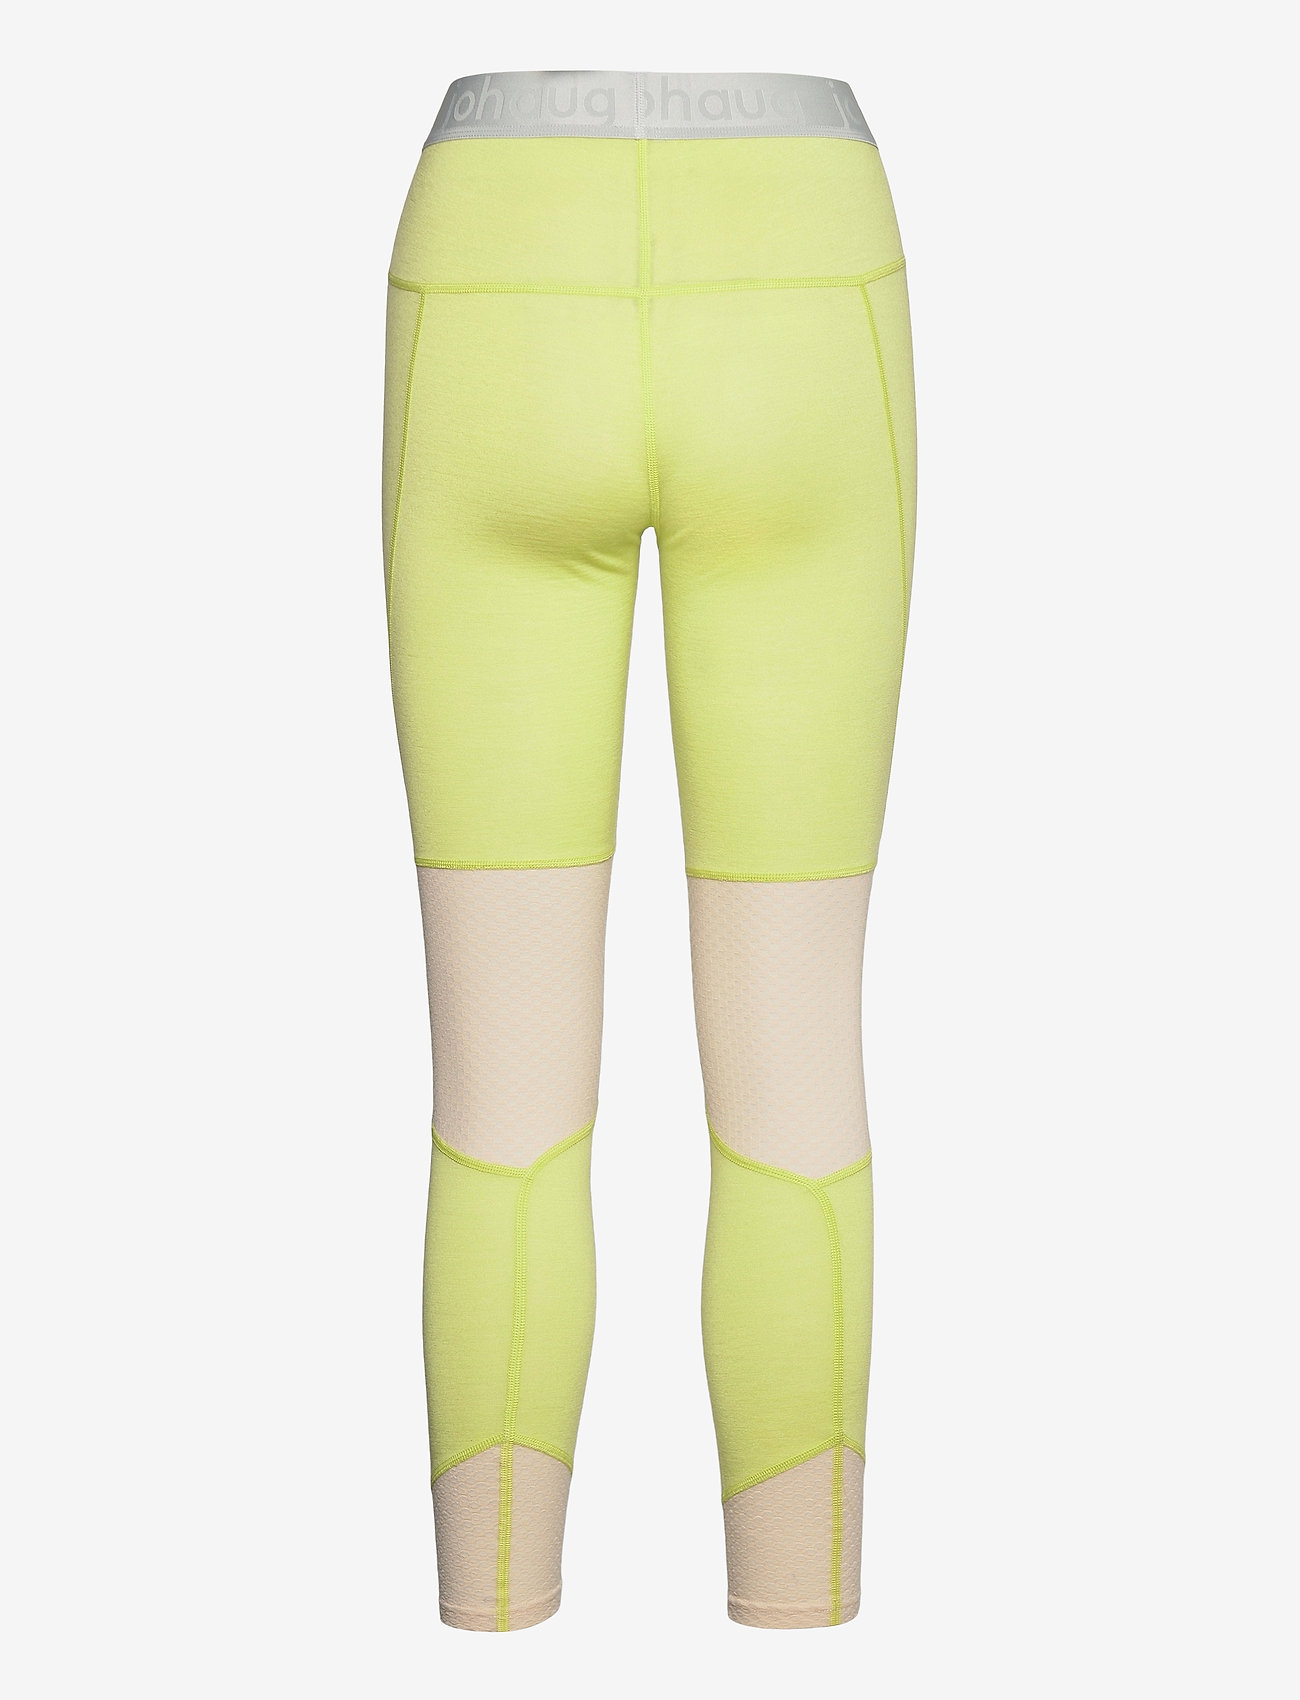 Johaug - LITHE TECH-WOOL PANT - thermo onderbroeken - lime - 1